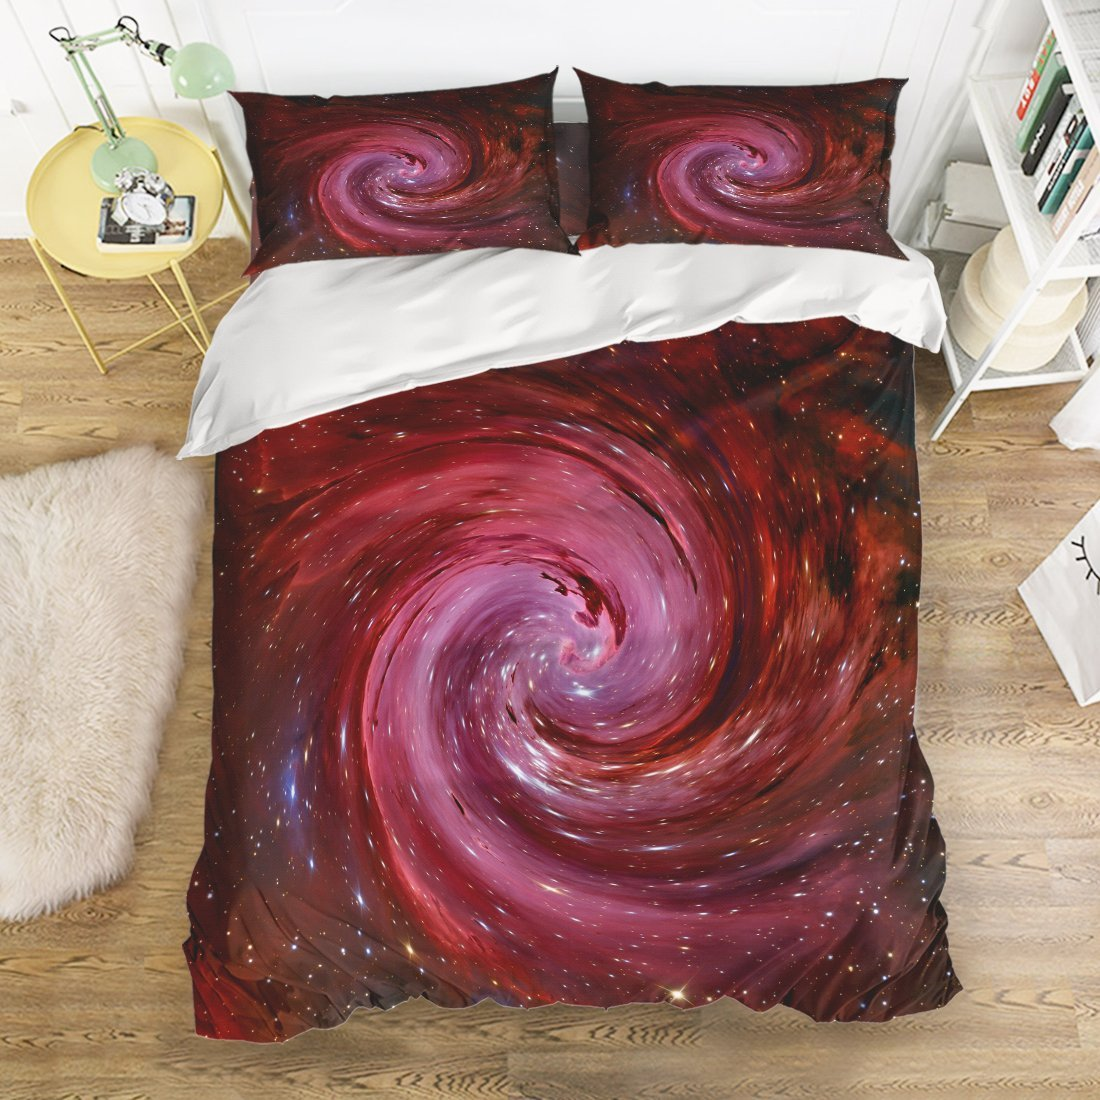 Family Comfort Bed Sheet Starry Vortex Sky 4 Piece Bedding Sets Polyester Duvet Cover HypoallergenicOversized Bedspread